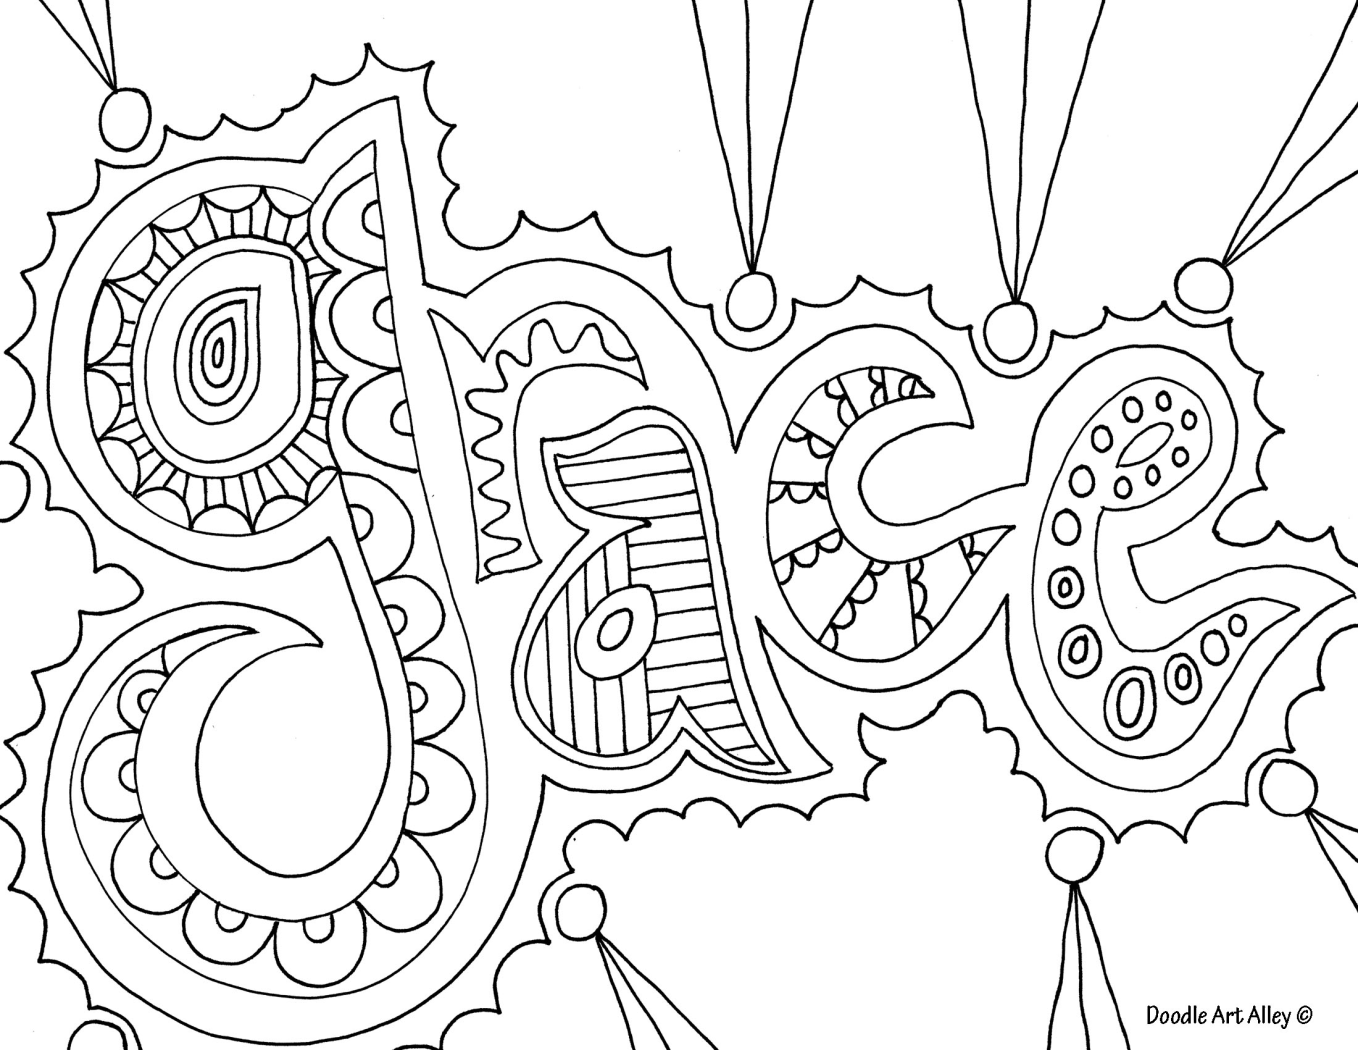 coloring pages for teens printable 45 free coloring pages for teens printable coloring teens for pages